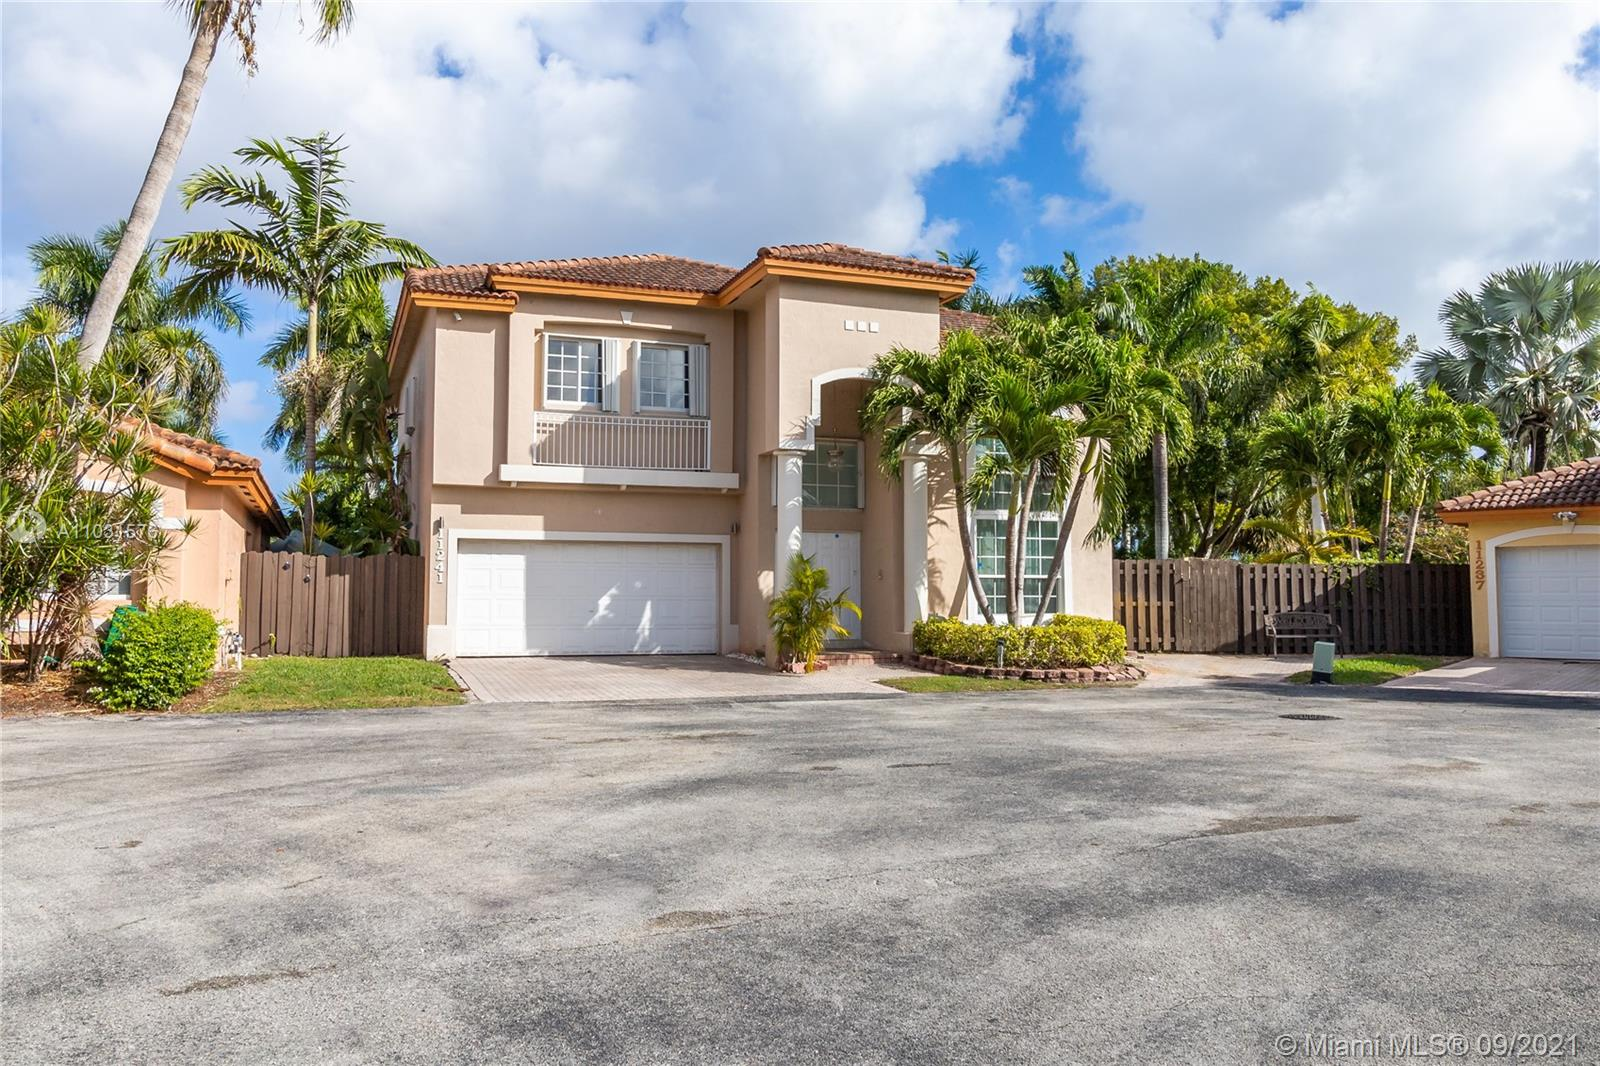 Doral Isles - 11241 NW 59th Ter, Doral, FL 33178